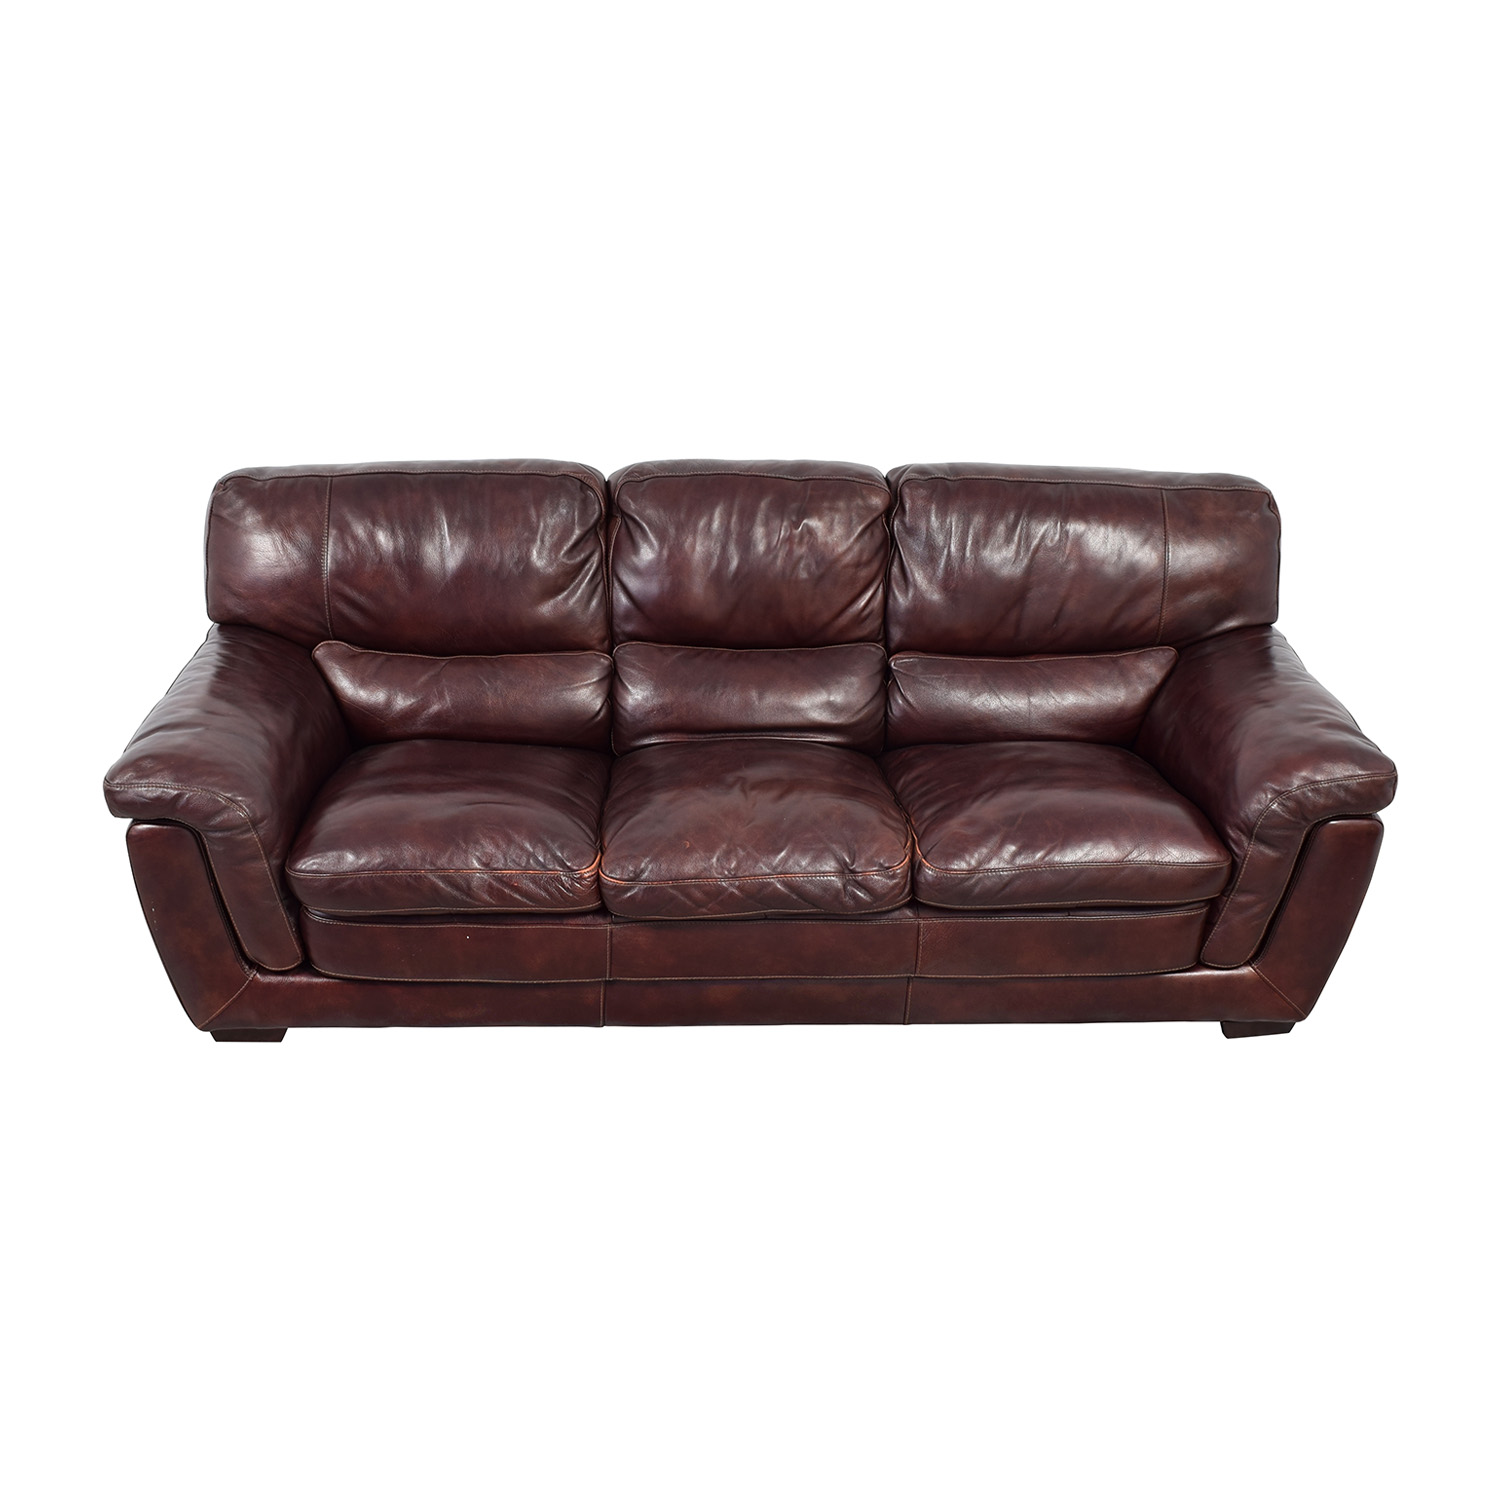 Raymour & Flanigan Raymour & Flanigan Burgundy Leather Three-Cushion Sofa on sale